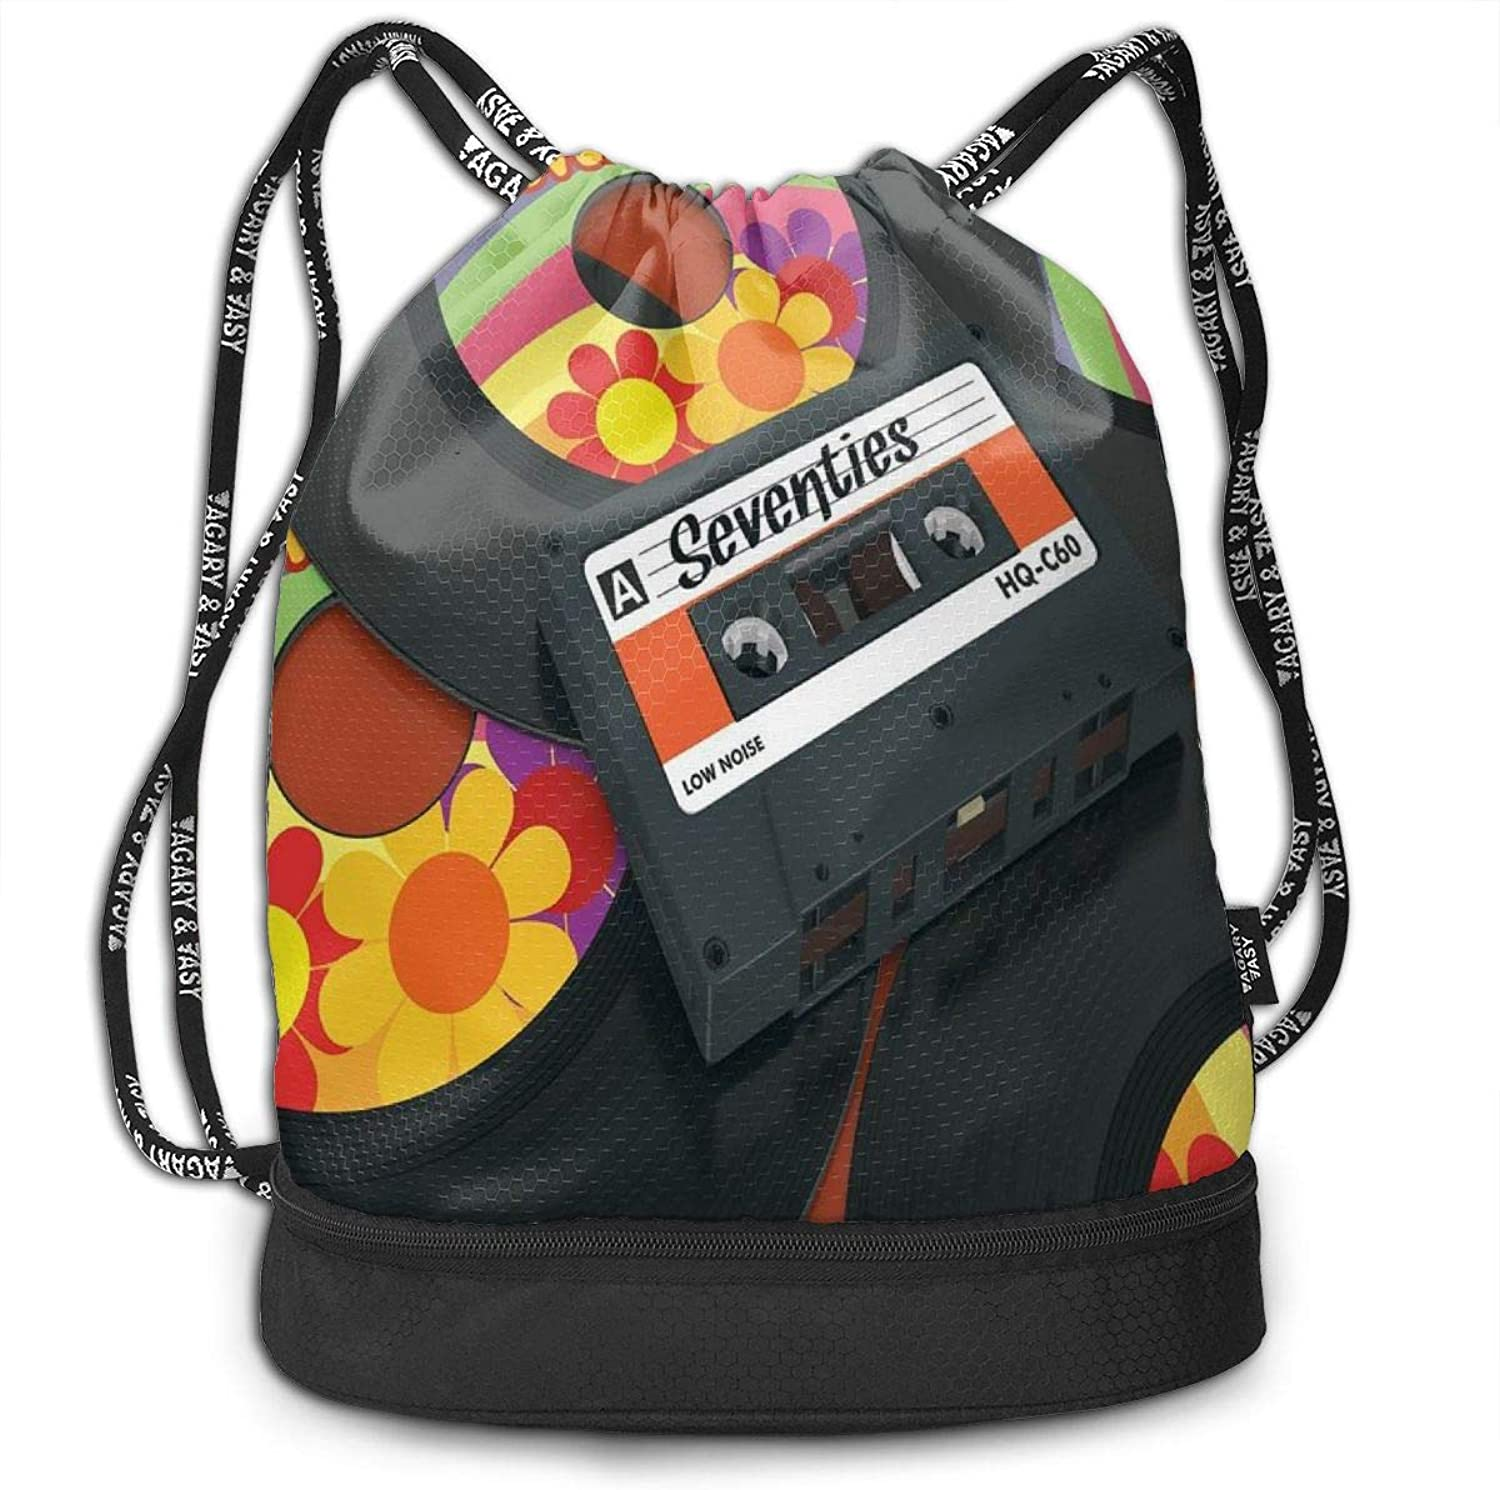 VANMASS Bundle Backpack 70s Party Compact Cassette Records Fitness Large Capacity Shoulder Drawstring Bags